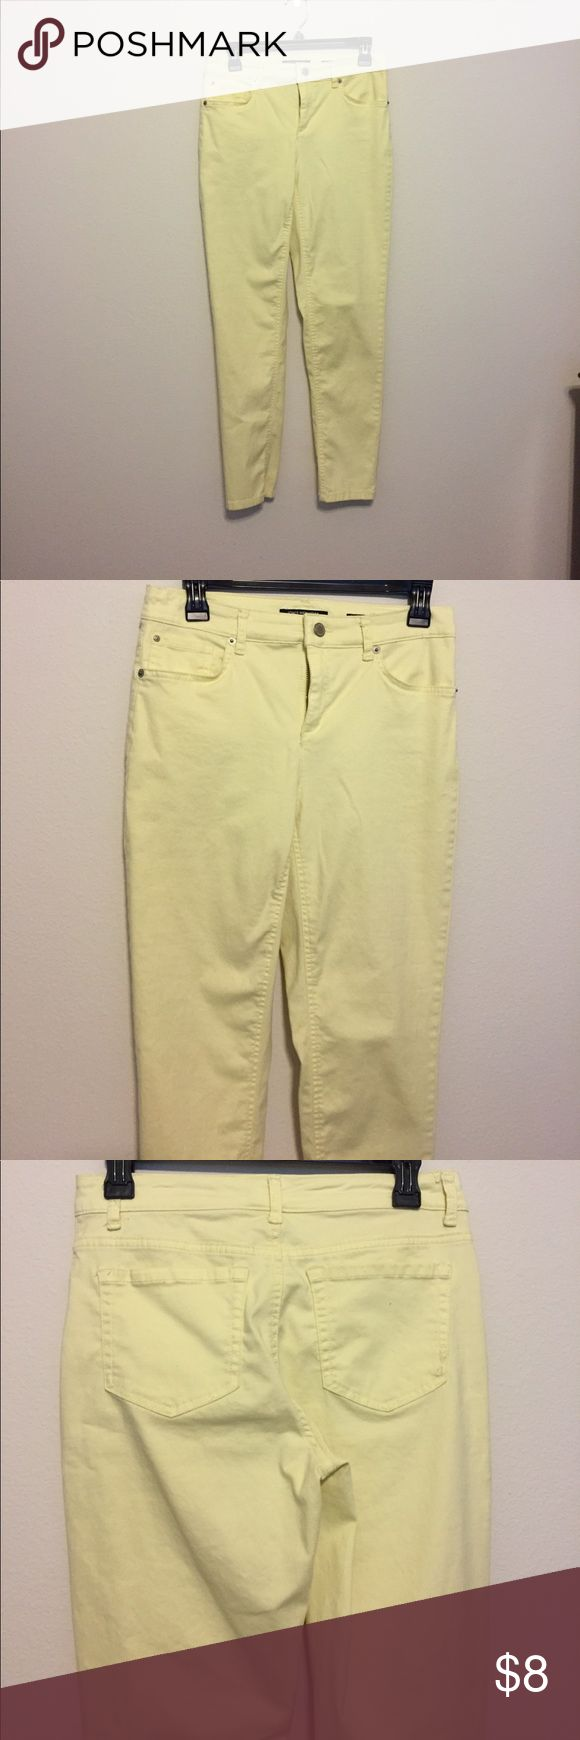 Mellow Yellow Skinny Pants Team with a light denim shirt or a fitted white tee. If yellow is a part of your wardrobe these are a must have. Super comfy and flattering fit. Jones New York Pants Skinny